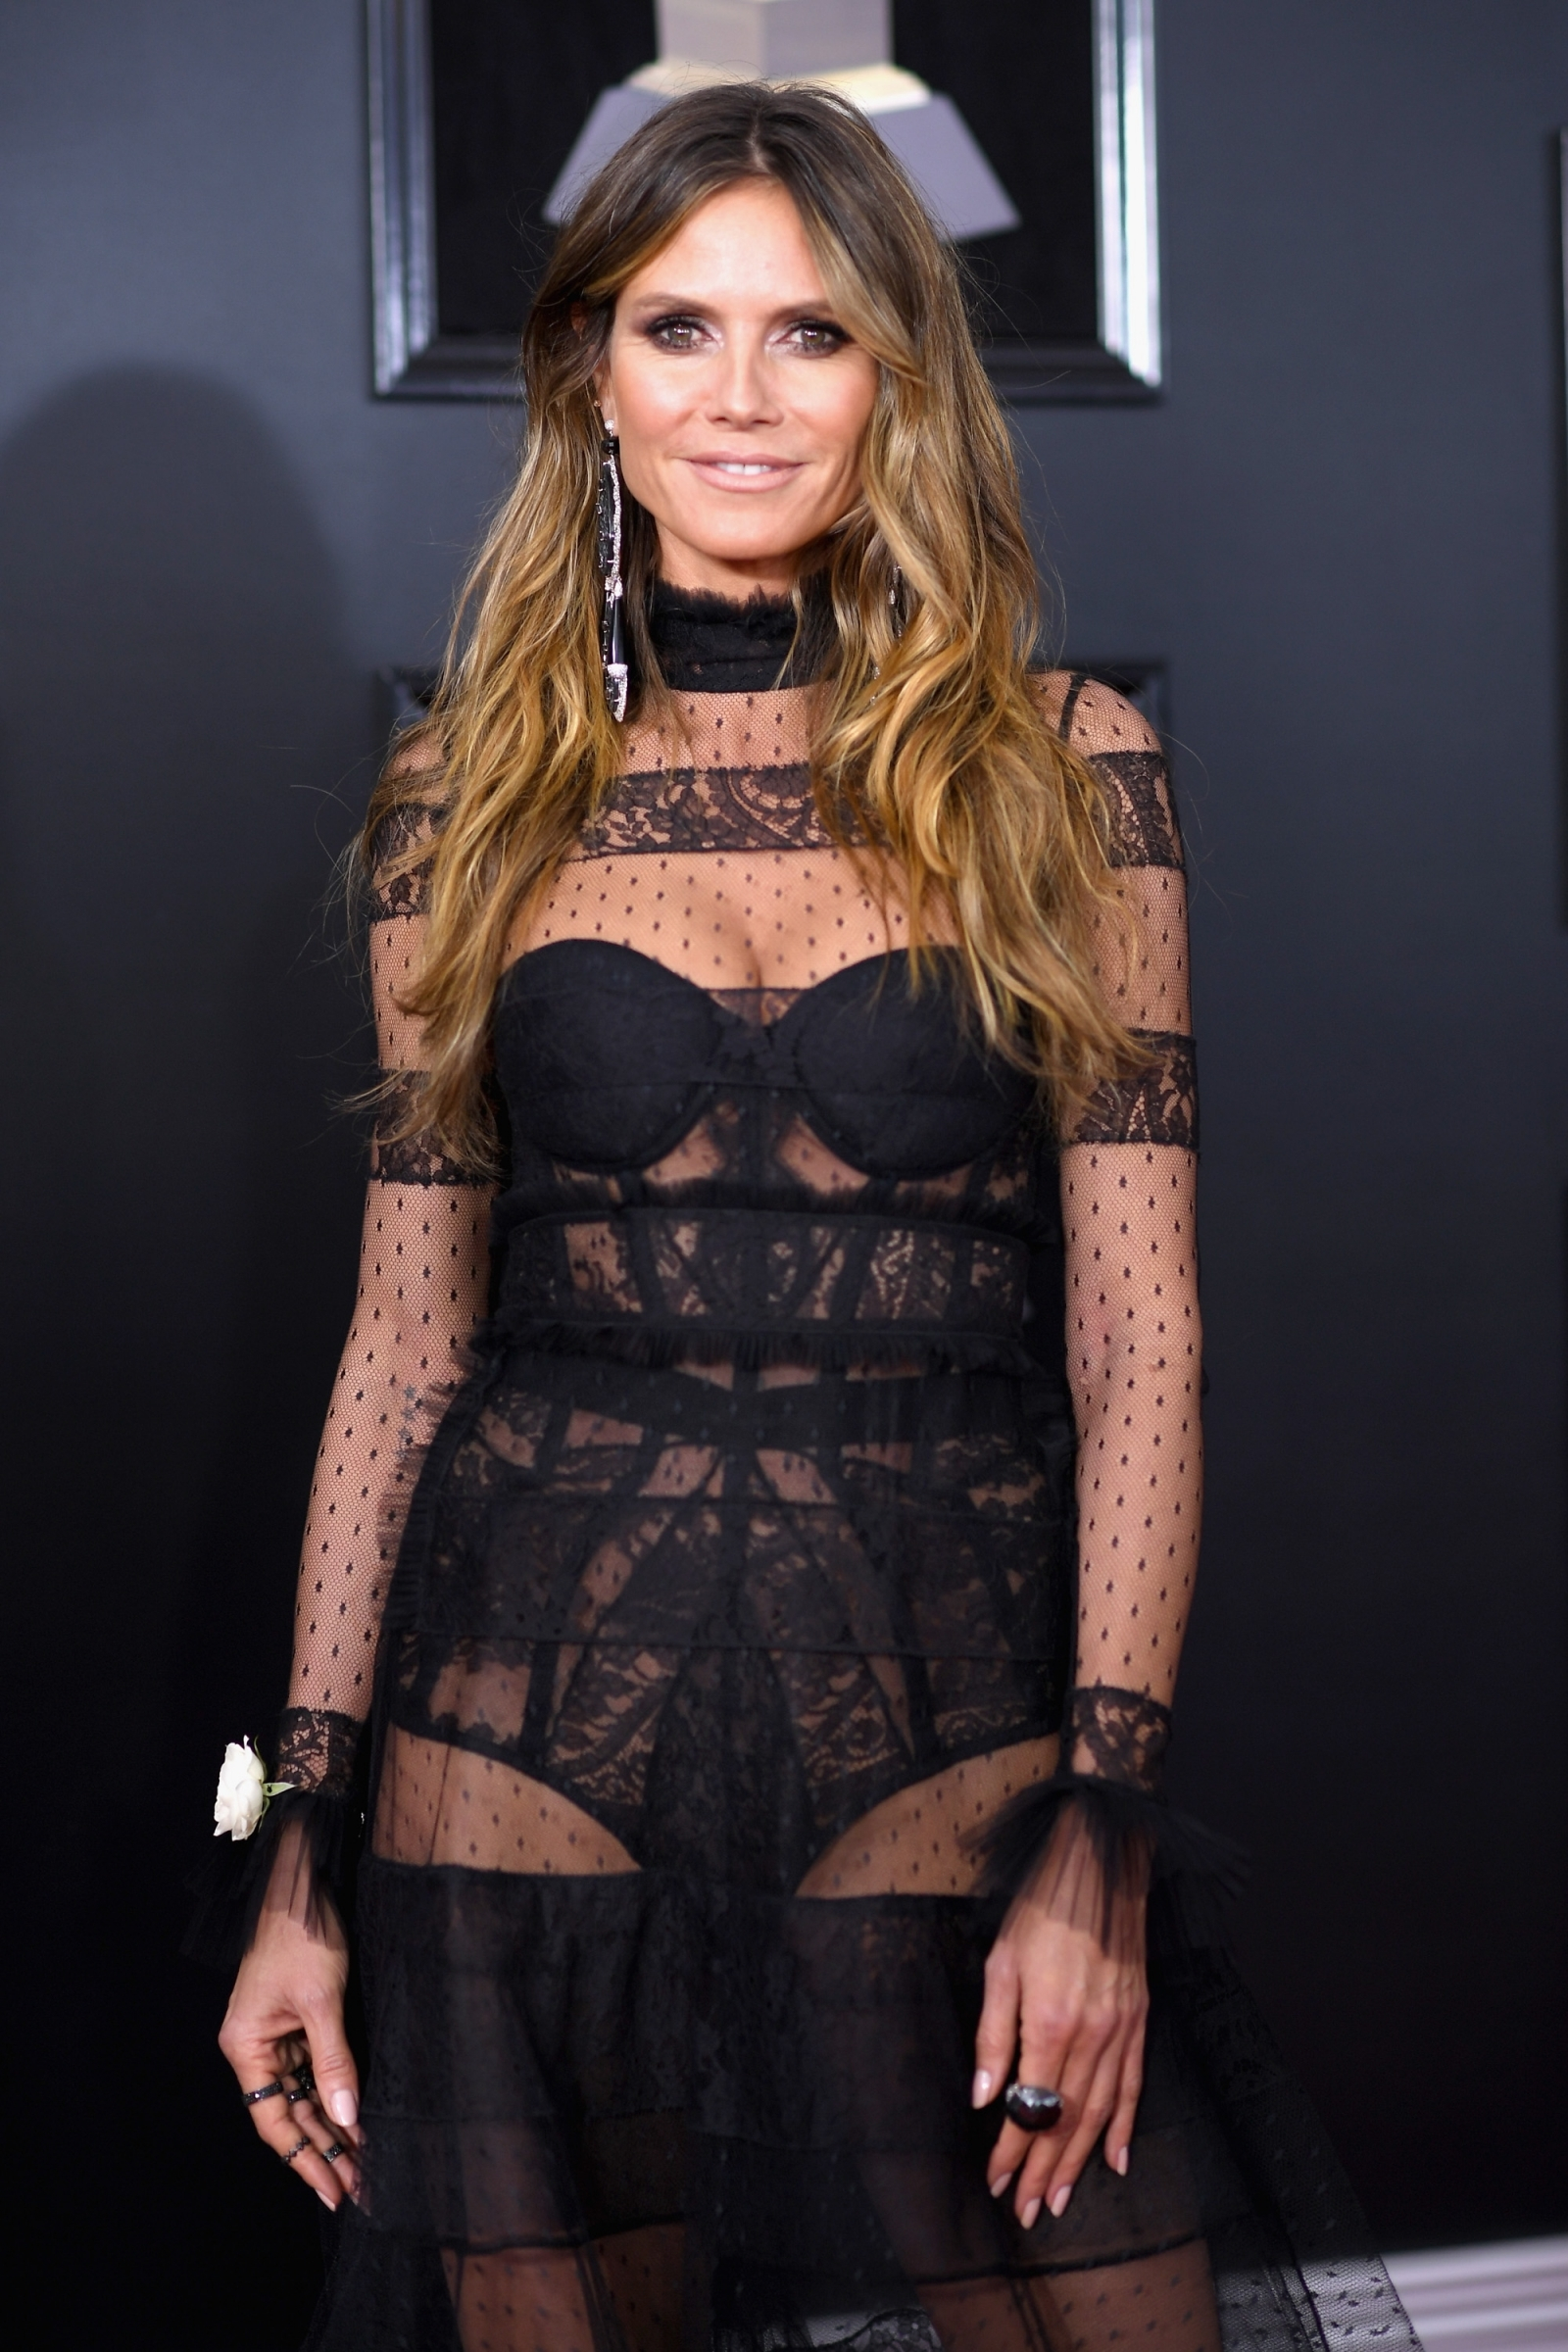 Heidi Klum Stuns In See Through Dress At The Grammys Breathtakingly Beautiful